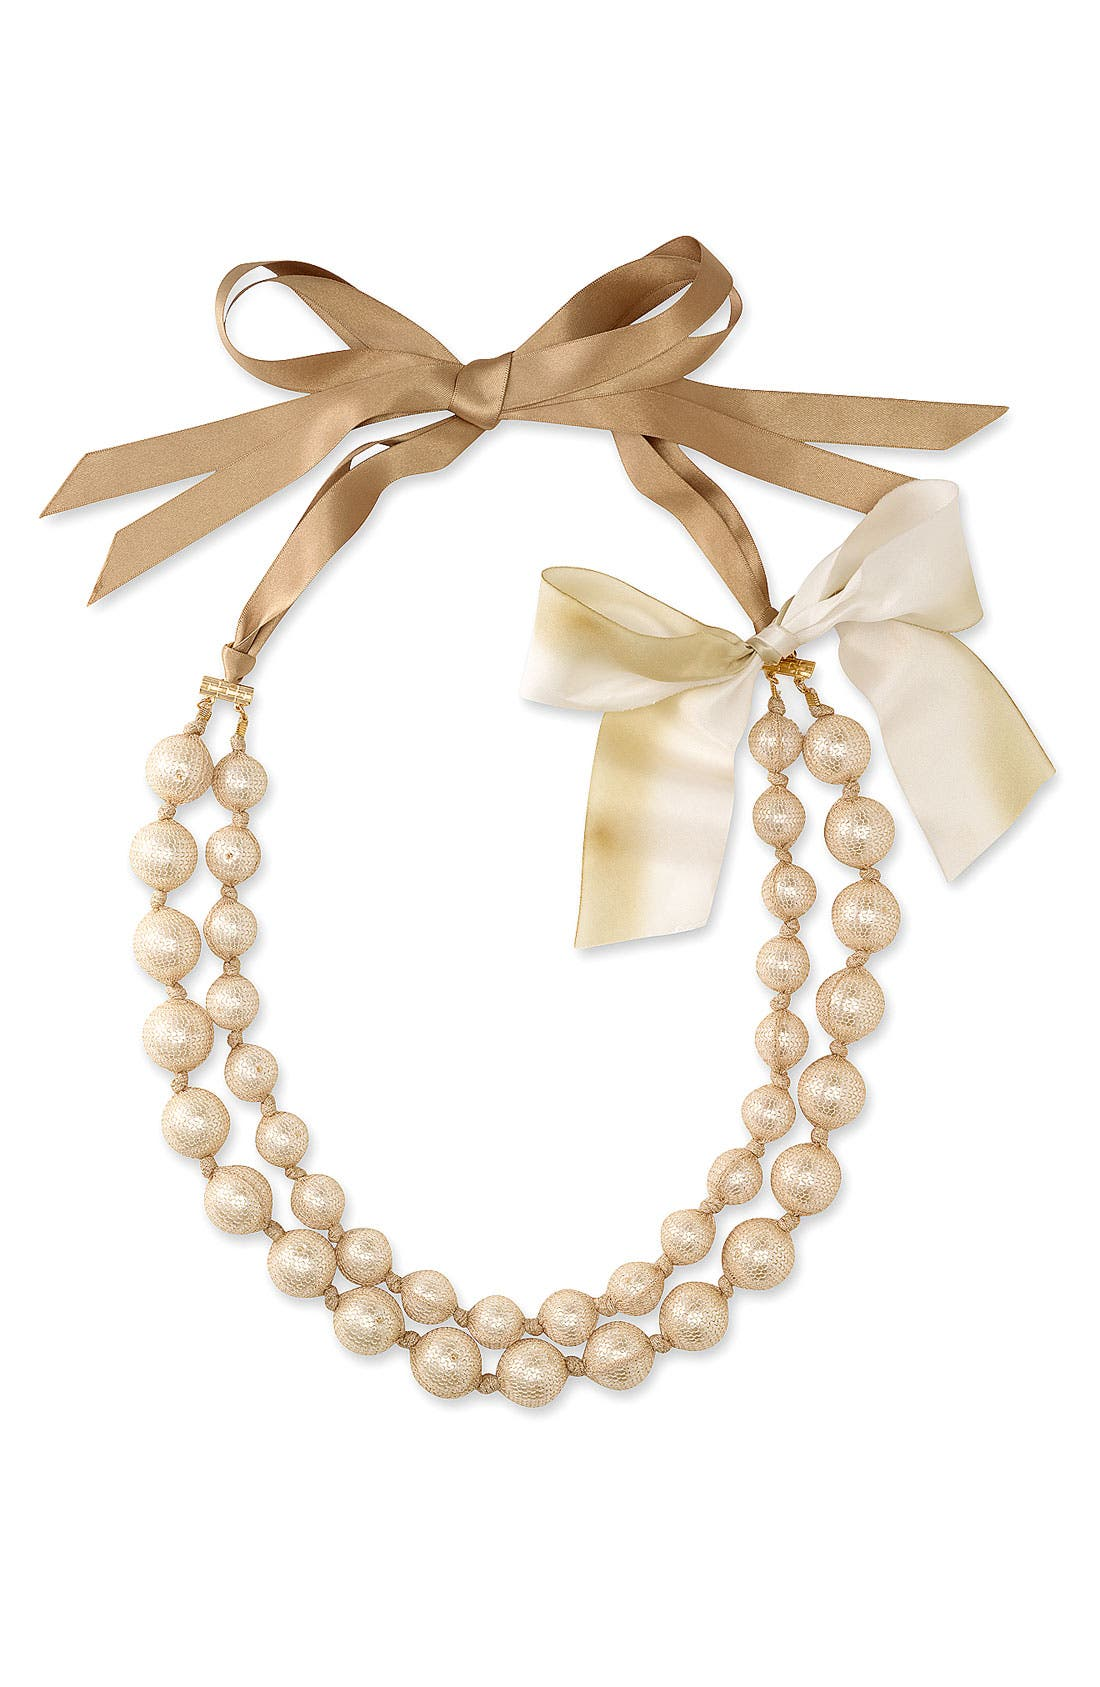 Alternate Image 1 Selected - Cara Accessories Netted Faux Pearl Necklace